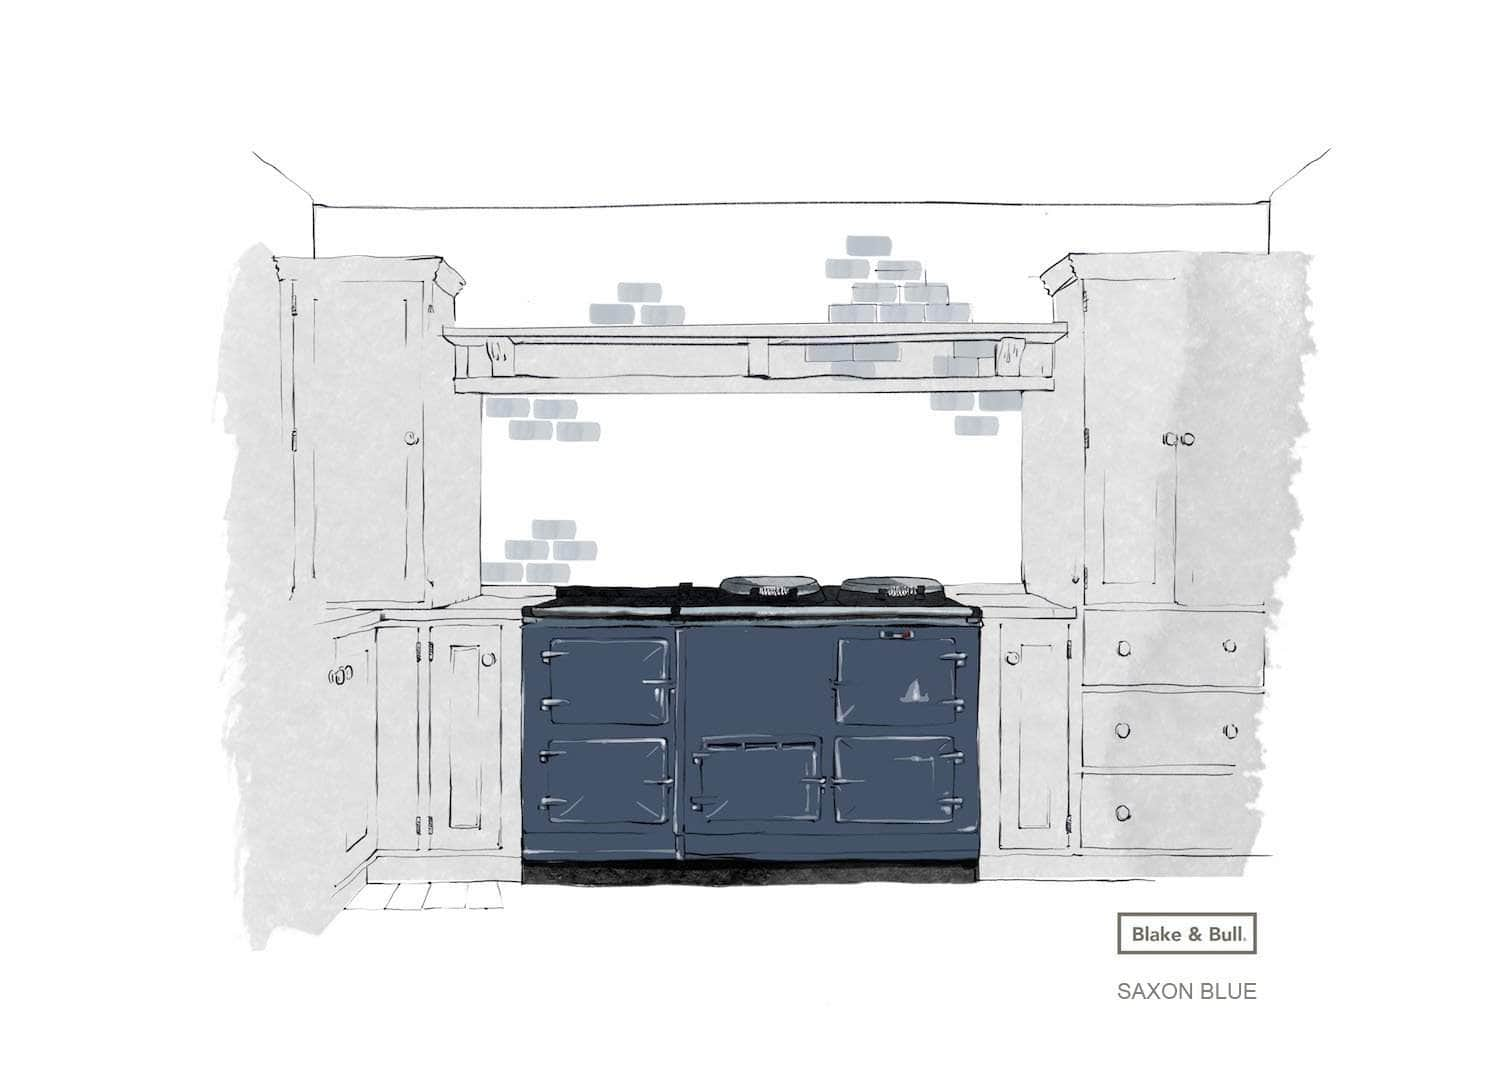 Reconditioned Aga range cooker 'Deluxe' (post-1974) 4 oven | 'eCook' by Blake & Bull | £9422 Saxon Blue / Pay in full and save £350. Use code 'SAVE350' at checkout